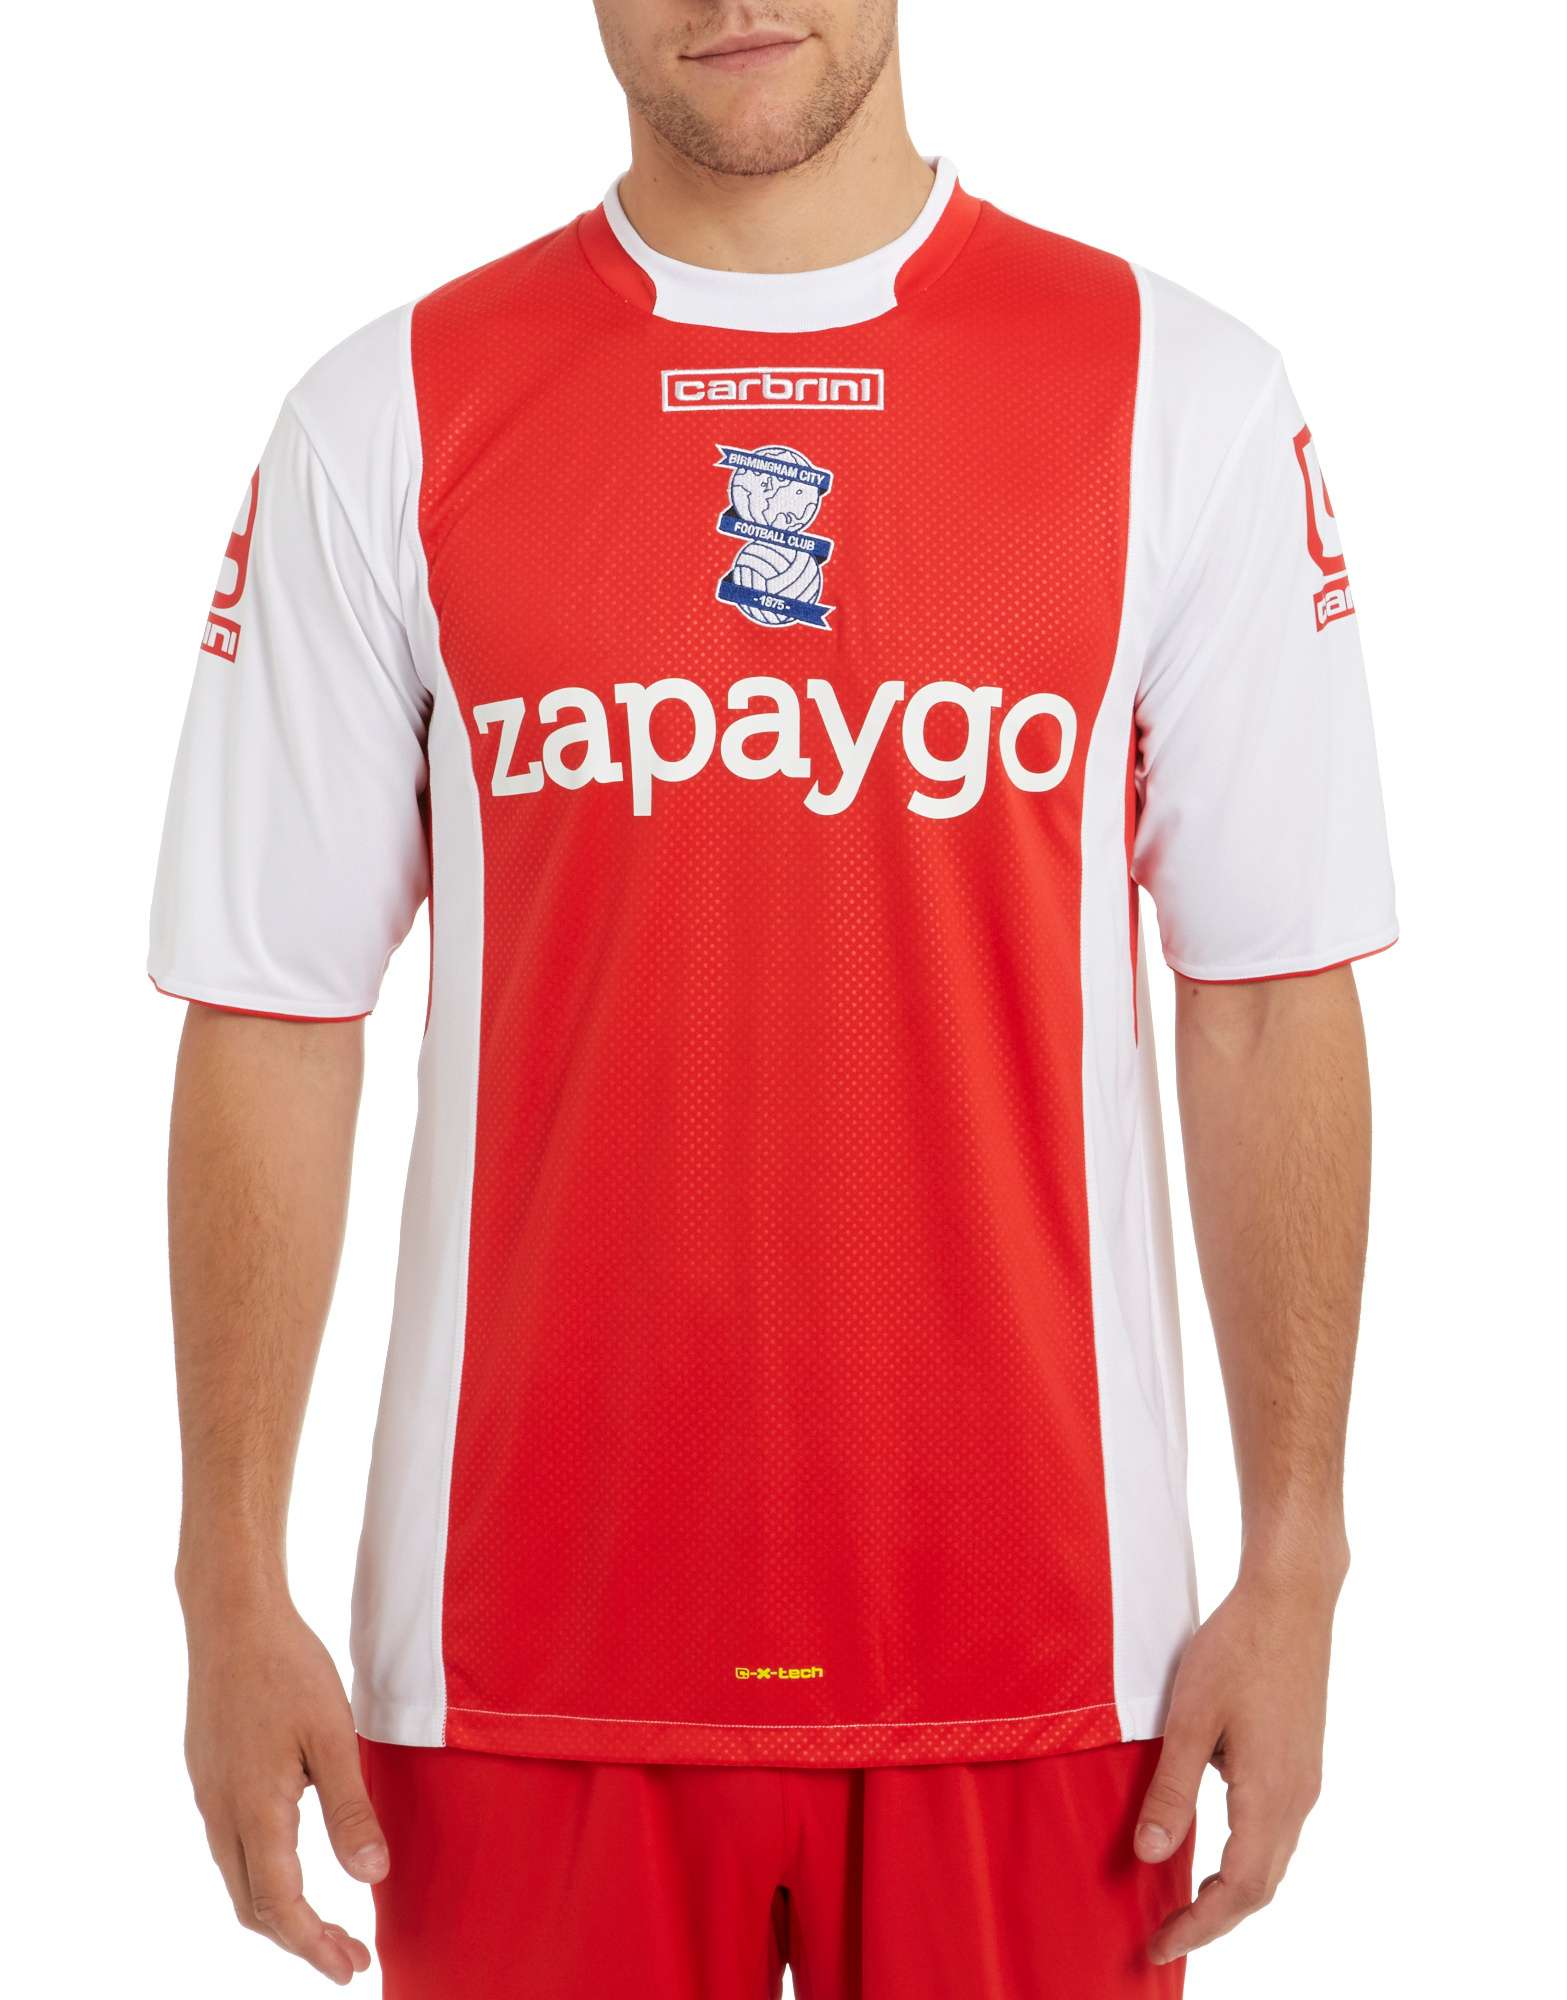 Carbrini Birmingham City FC 2014 Away Shirt